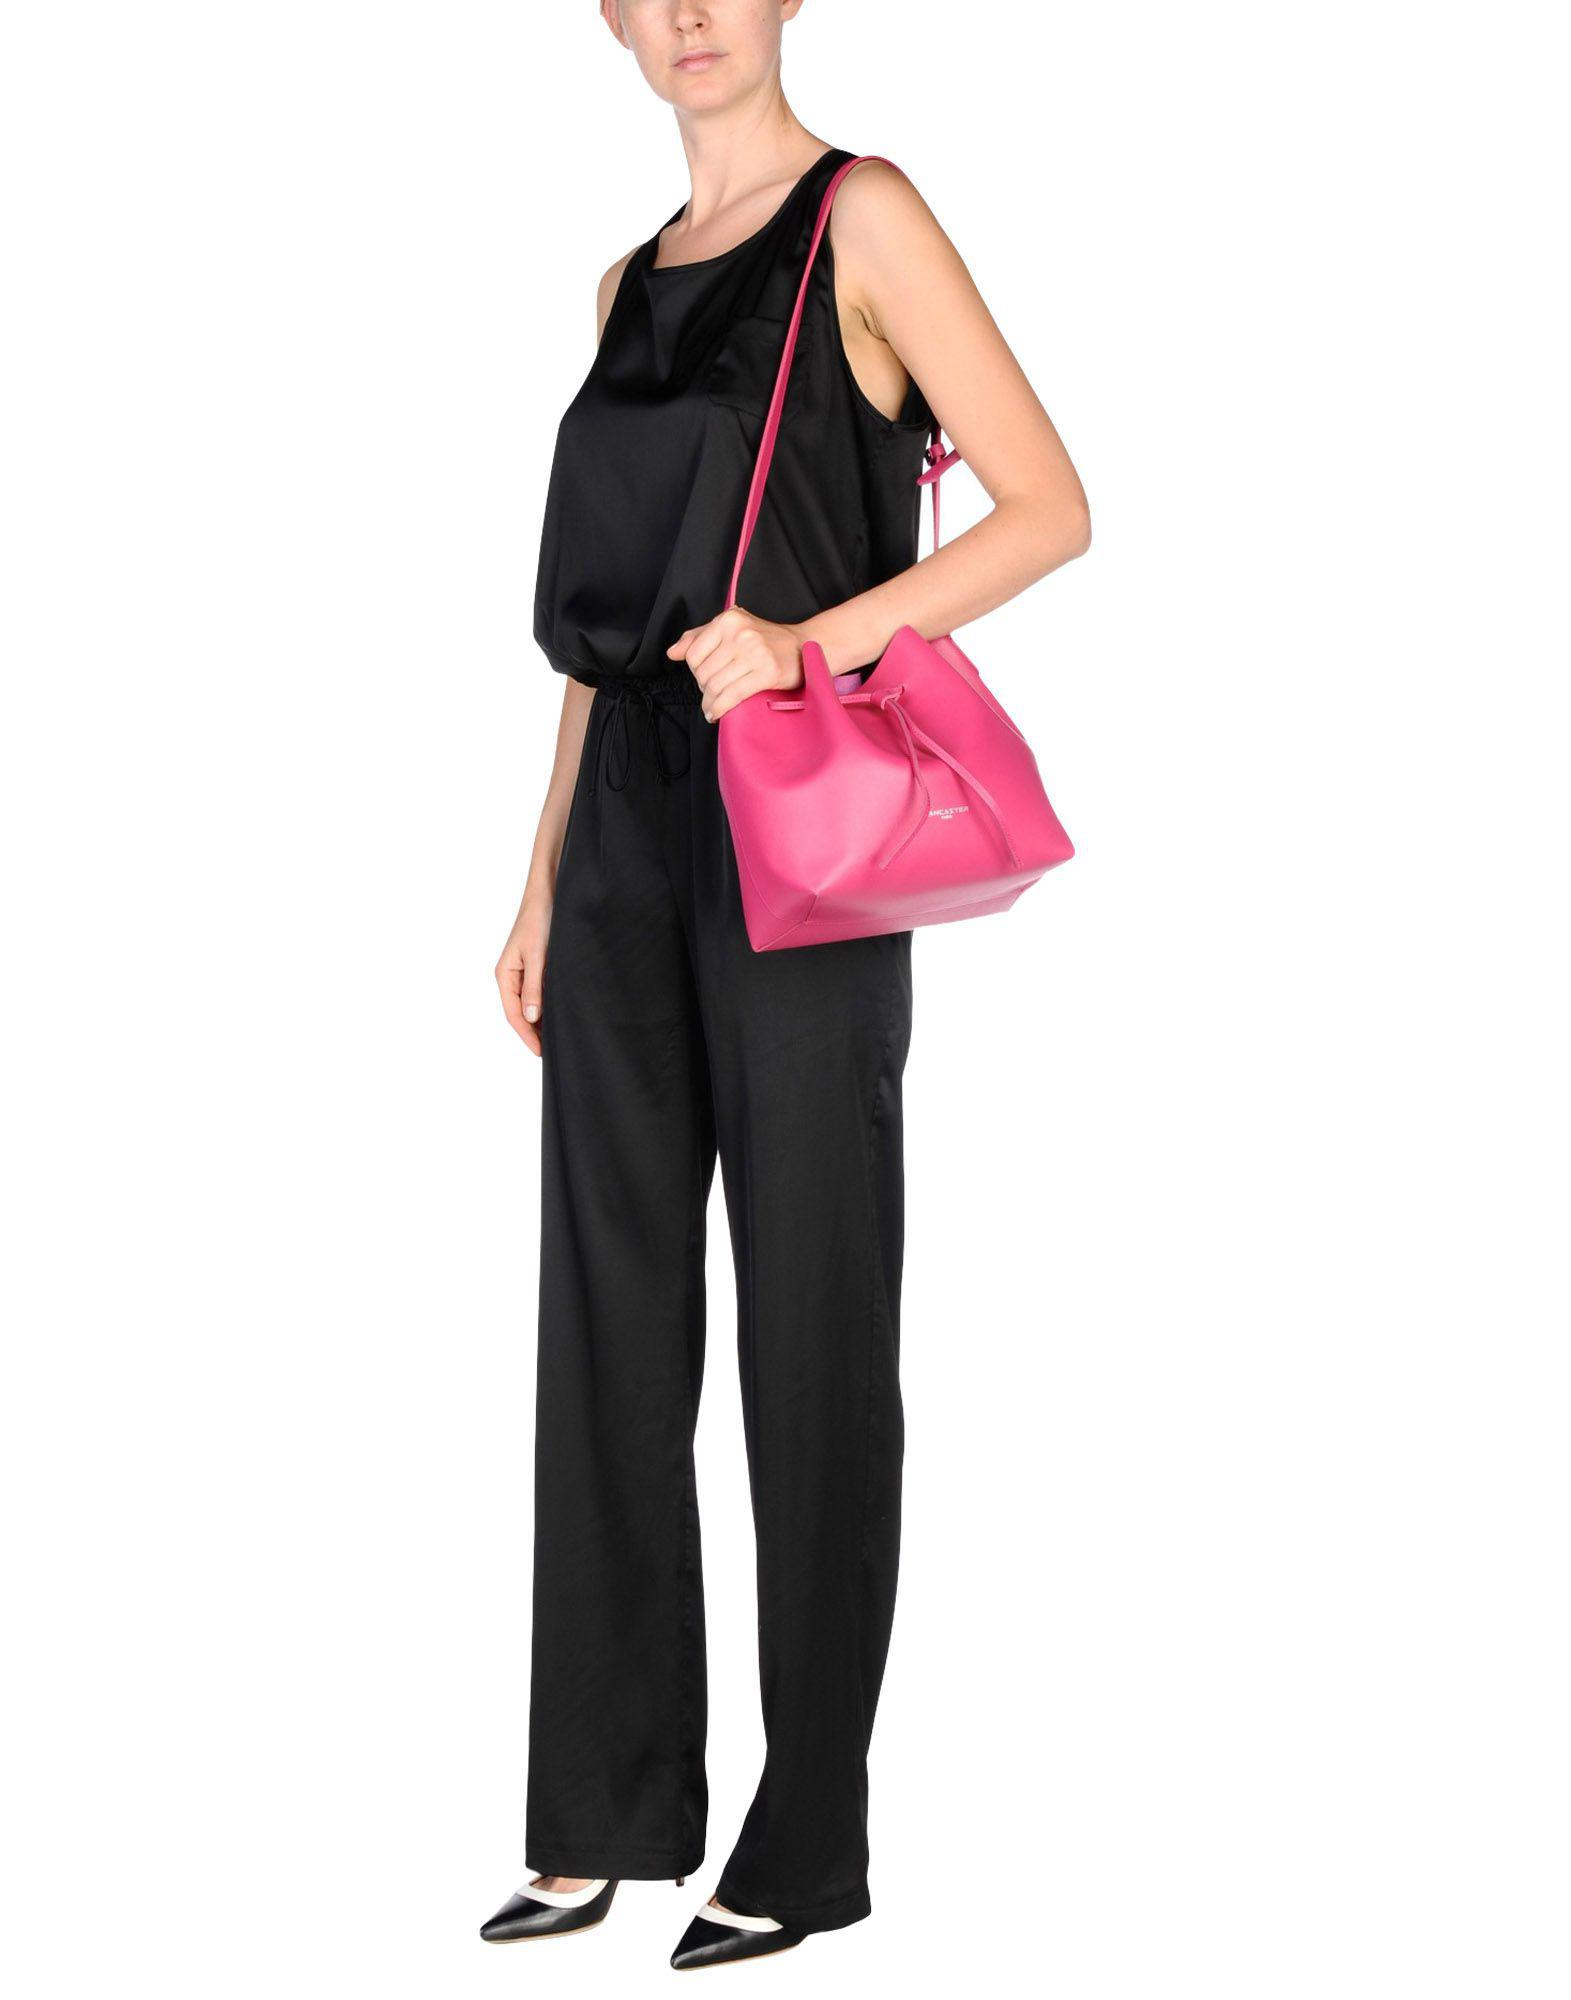 Lancaster Leather Cross-body Bag in Fuchsia (Pink)